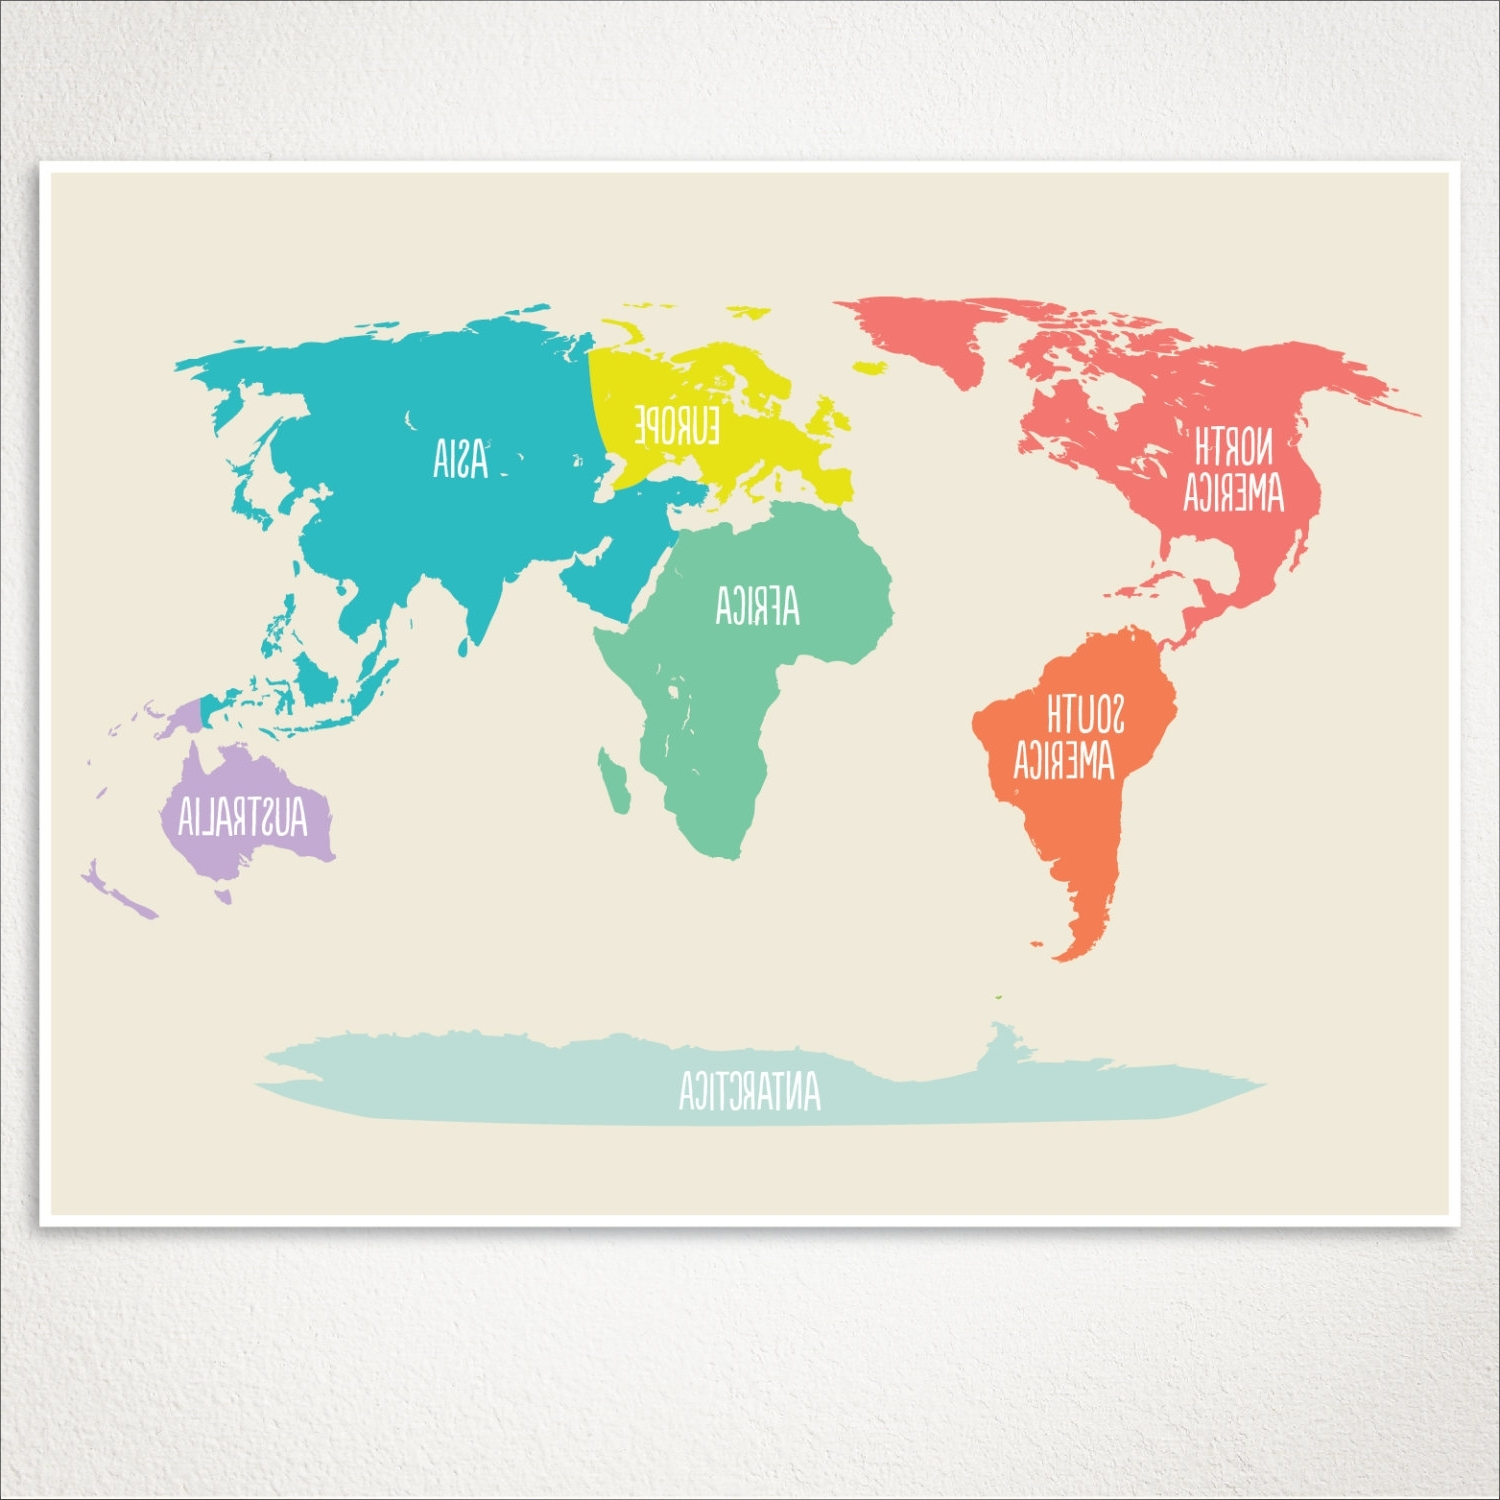 World Map Kids Nursery Room Decor Baby Art Playroom At Poster For Most Current World Map Wall Art For Kids (View 17 of 20)